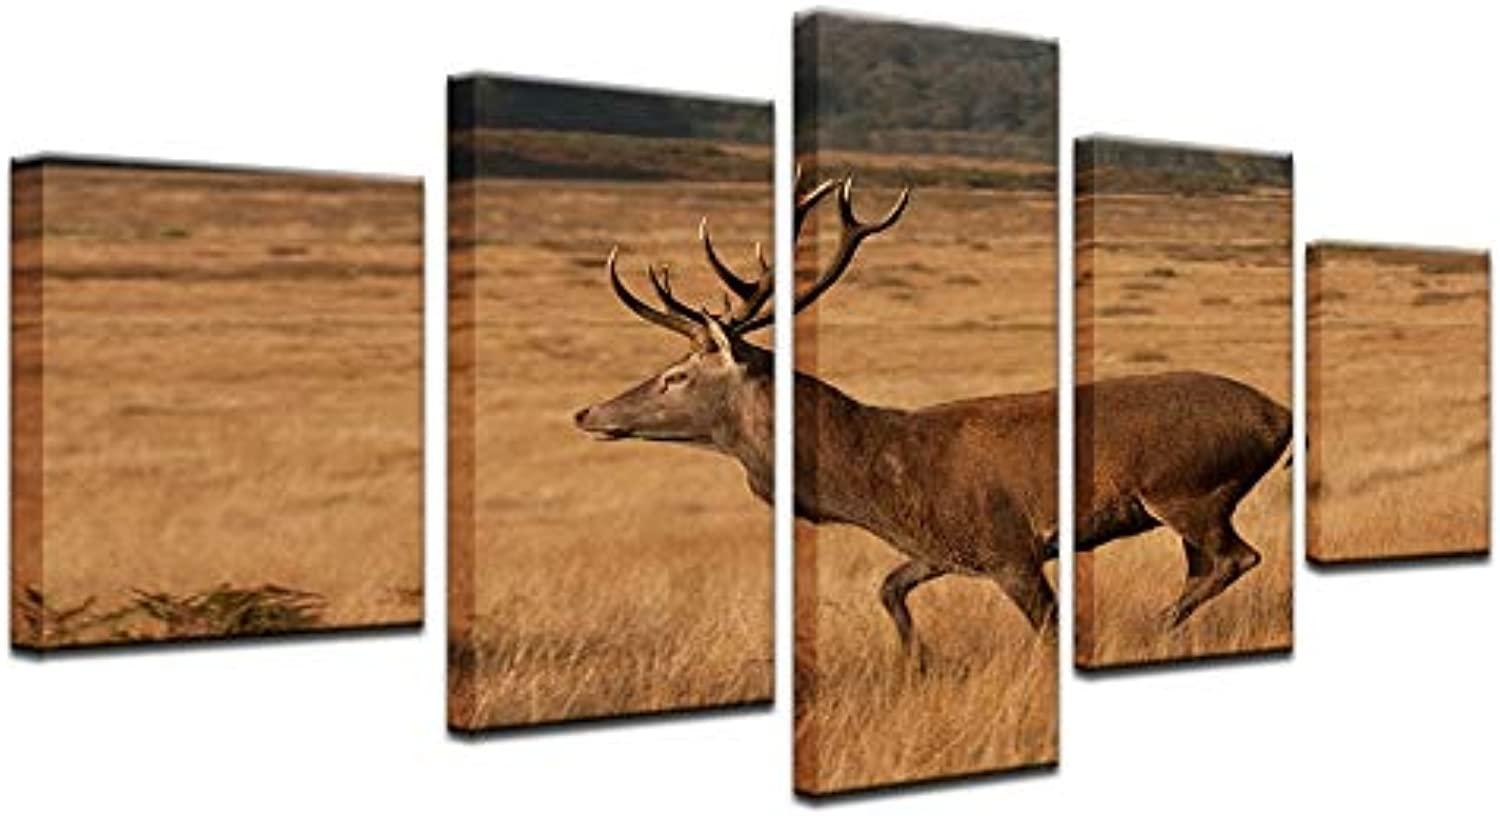 Canvas Painting Wall Art Pictures for Living Room Decorative Frame 5 Panel Modern HD Printed Prairie Animal Deer Poster